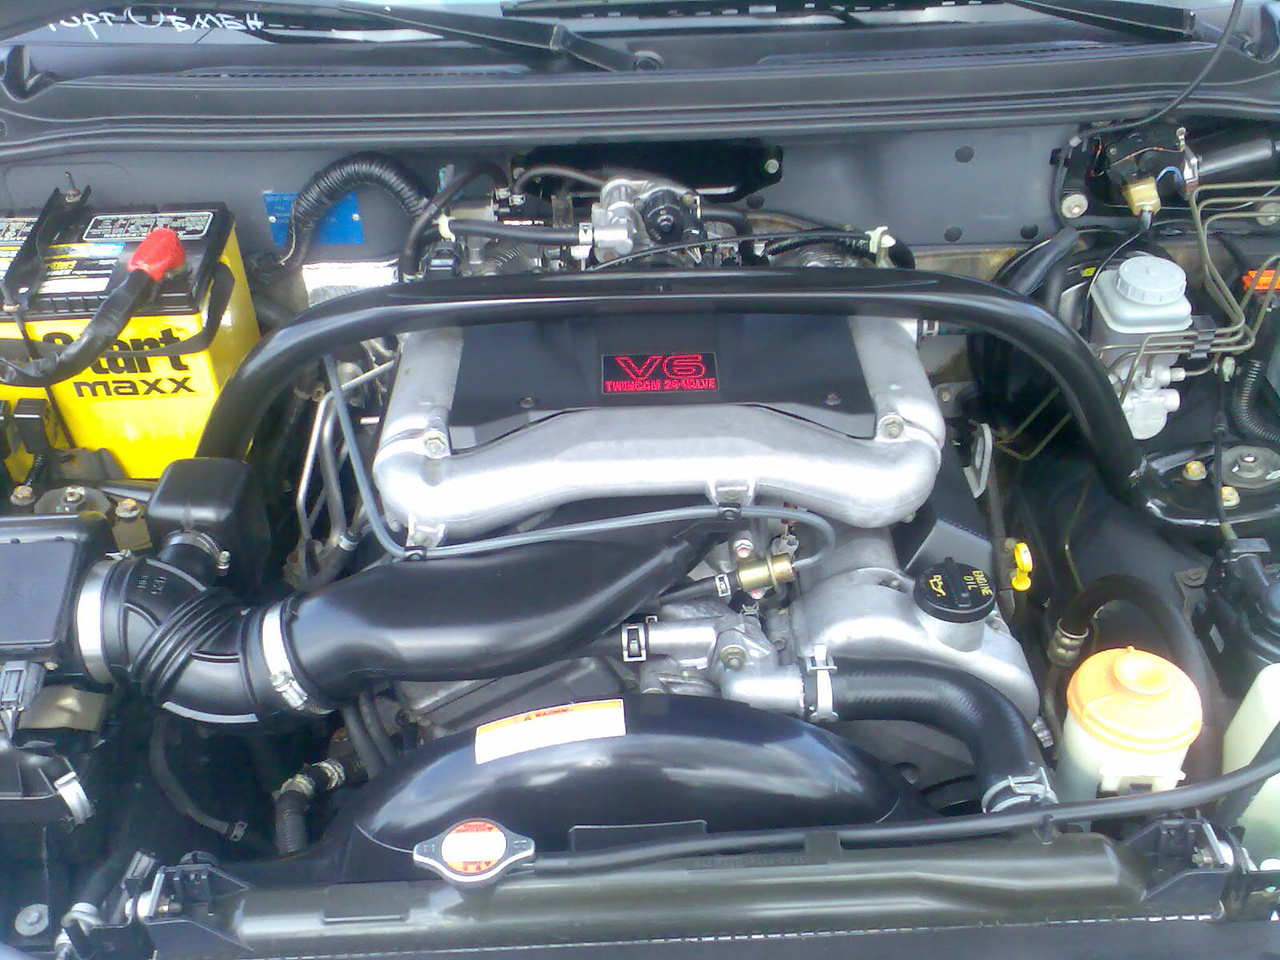 SUZUKI GRAND VITARA XL-7 engine